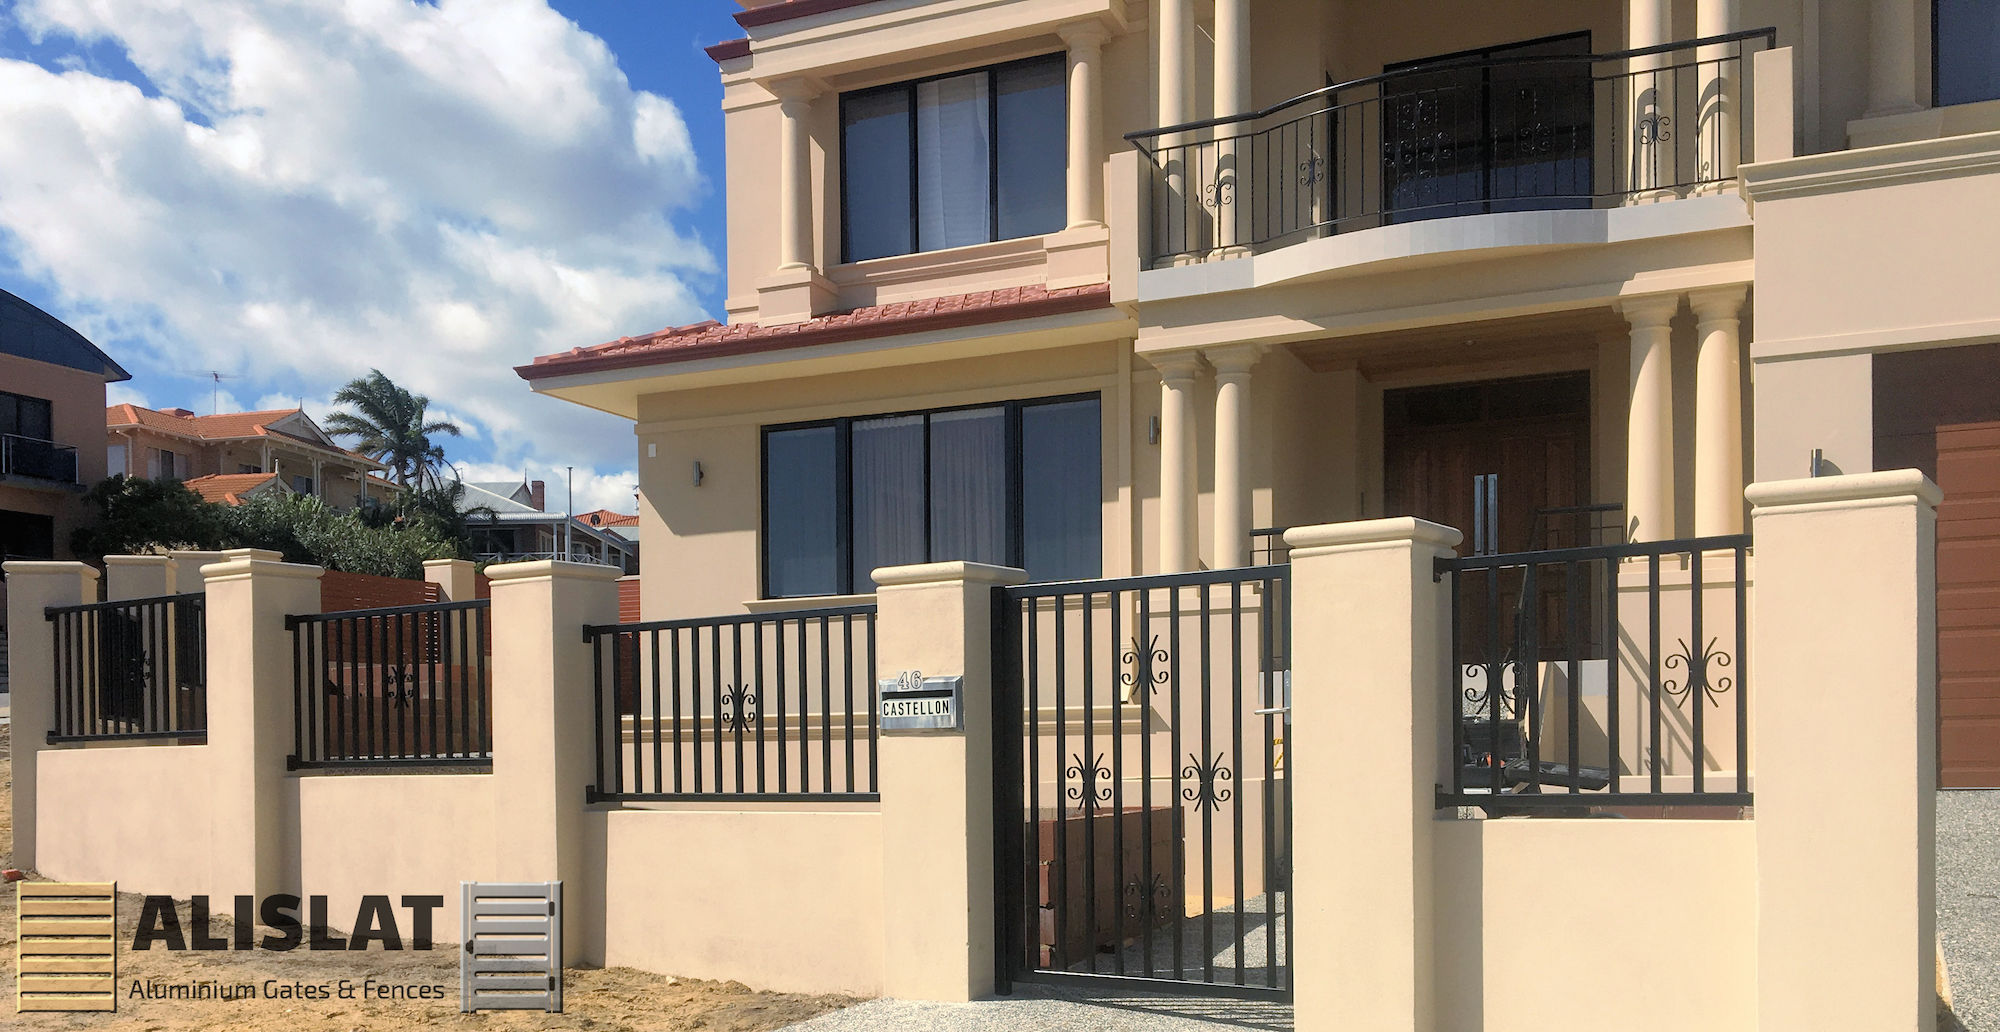 ALISLAT WALLS, WROUGHT IRON & ALUMINIUM SLATS ALL MADE IN AUSTRALIA